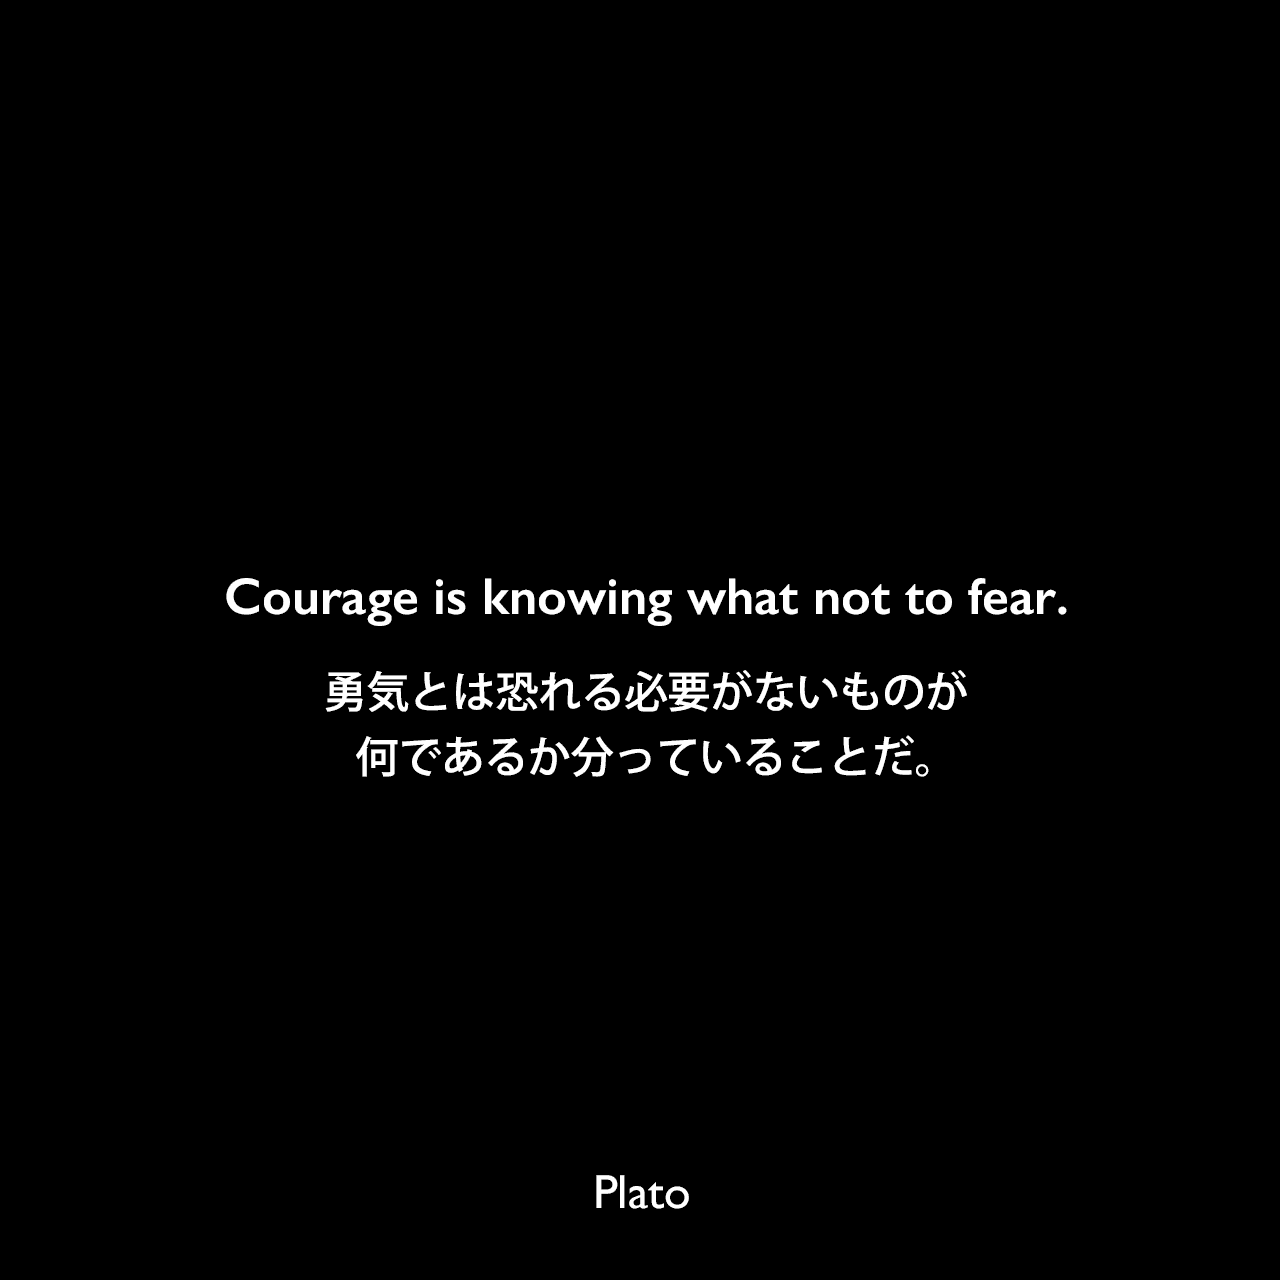 Courage is knowing what not to fear.勇気とは恐れる必要がないものが何であるか分っていることだ。Plato